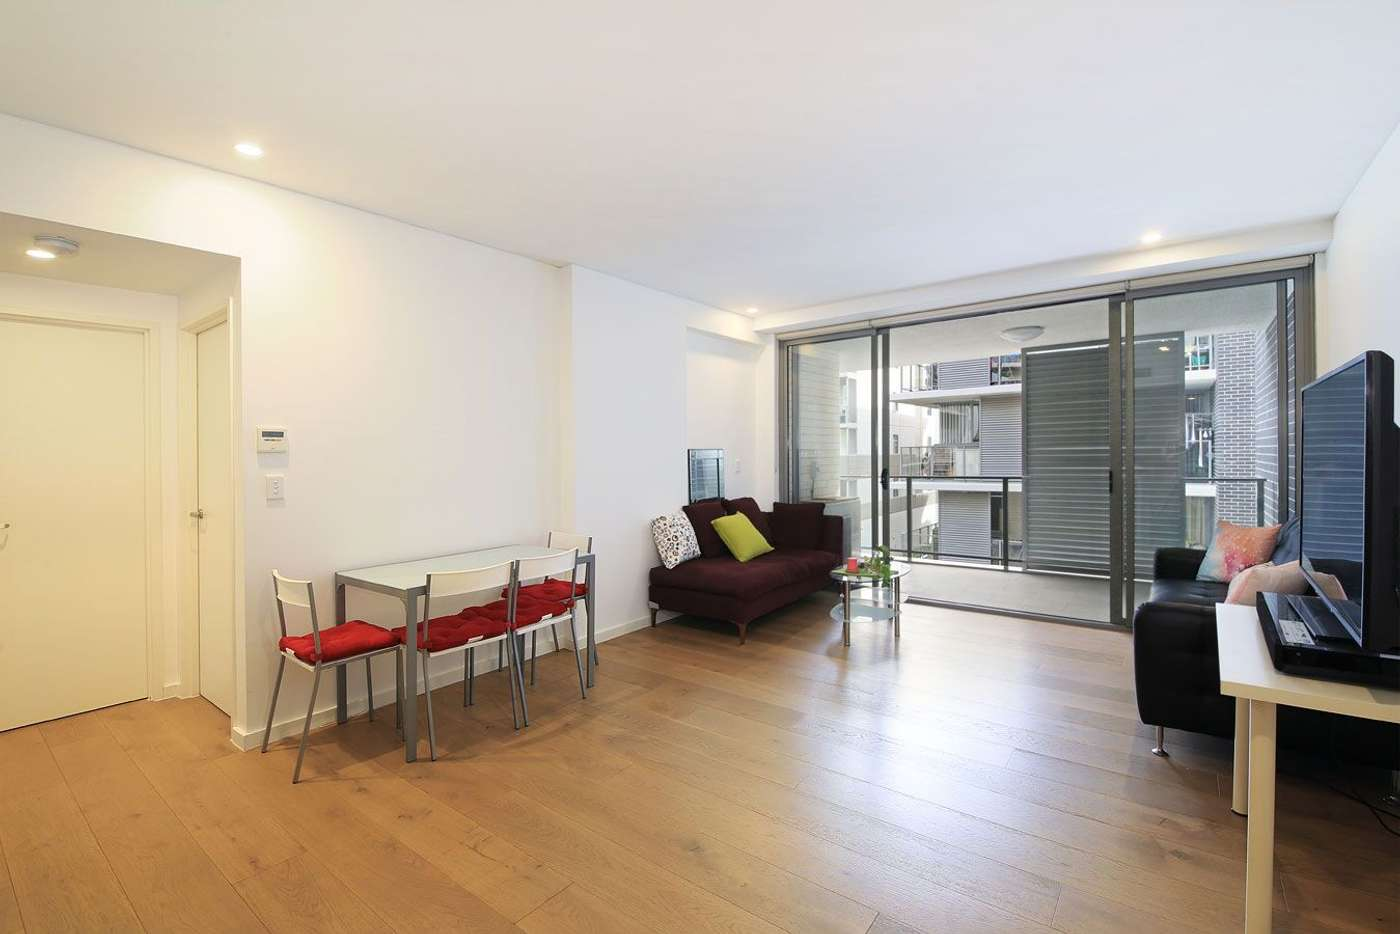 Main view of Homely apartment listing, 209/2-6 Martin Ave, Arncliffe NSW 2205